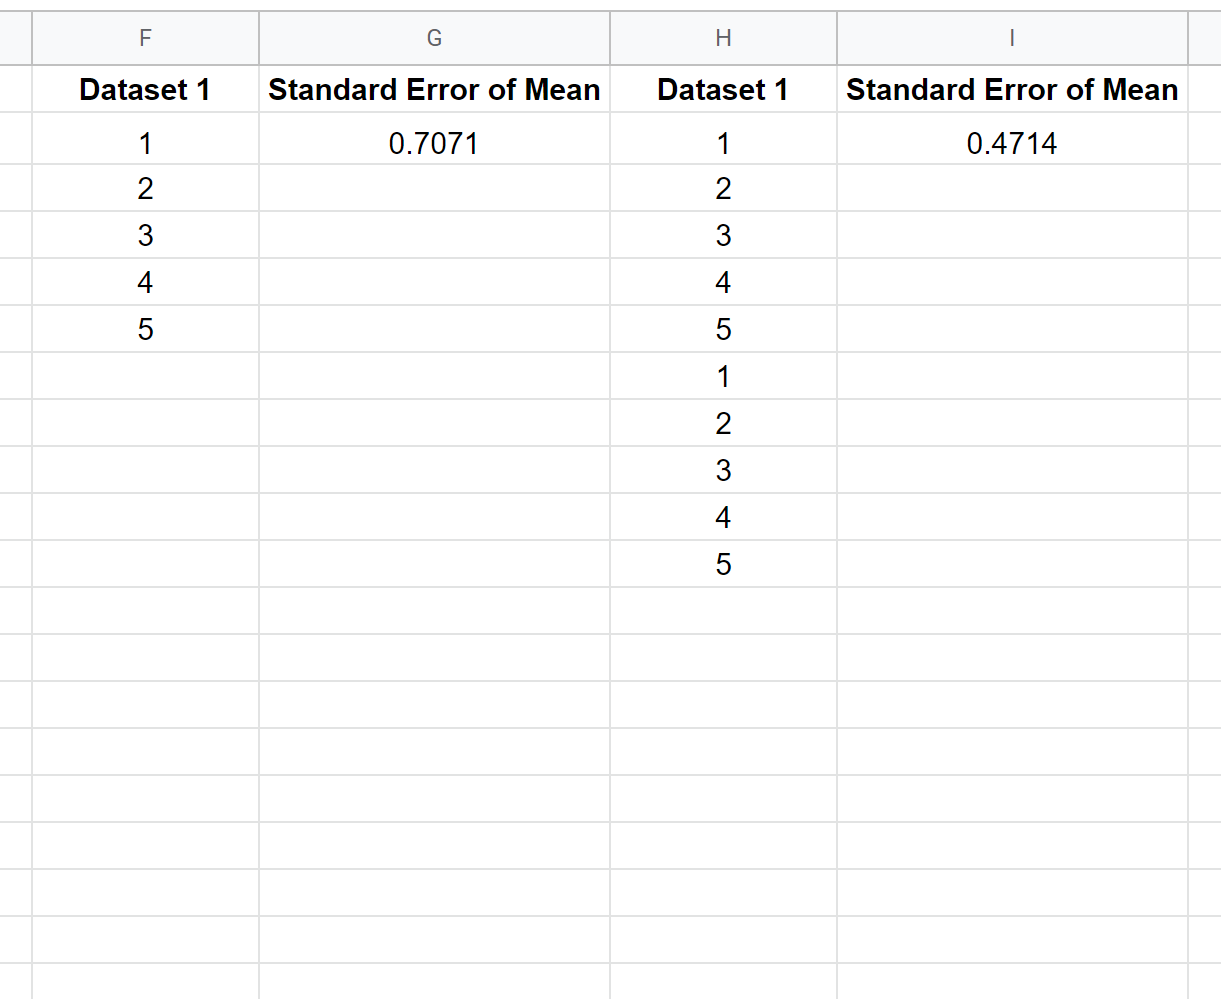 Comparing two standard errors in Google Sheets